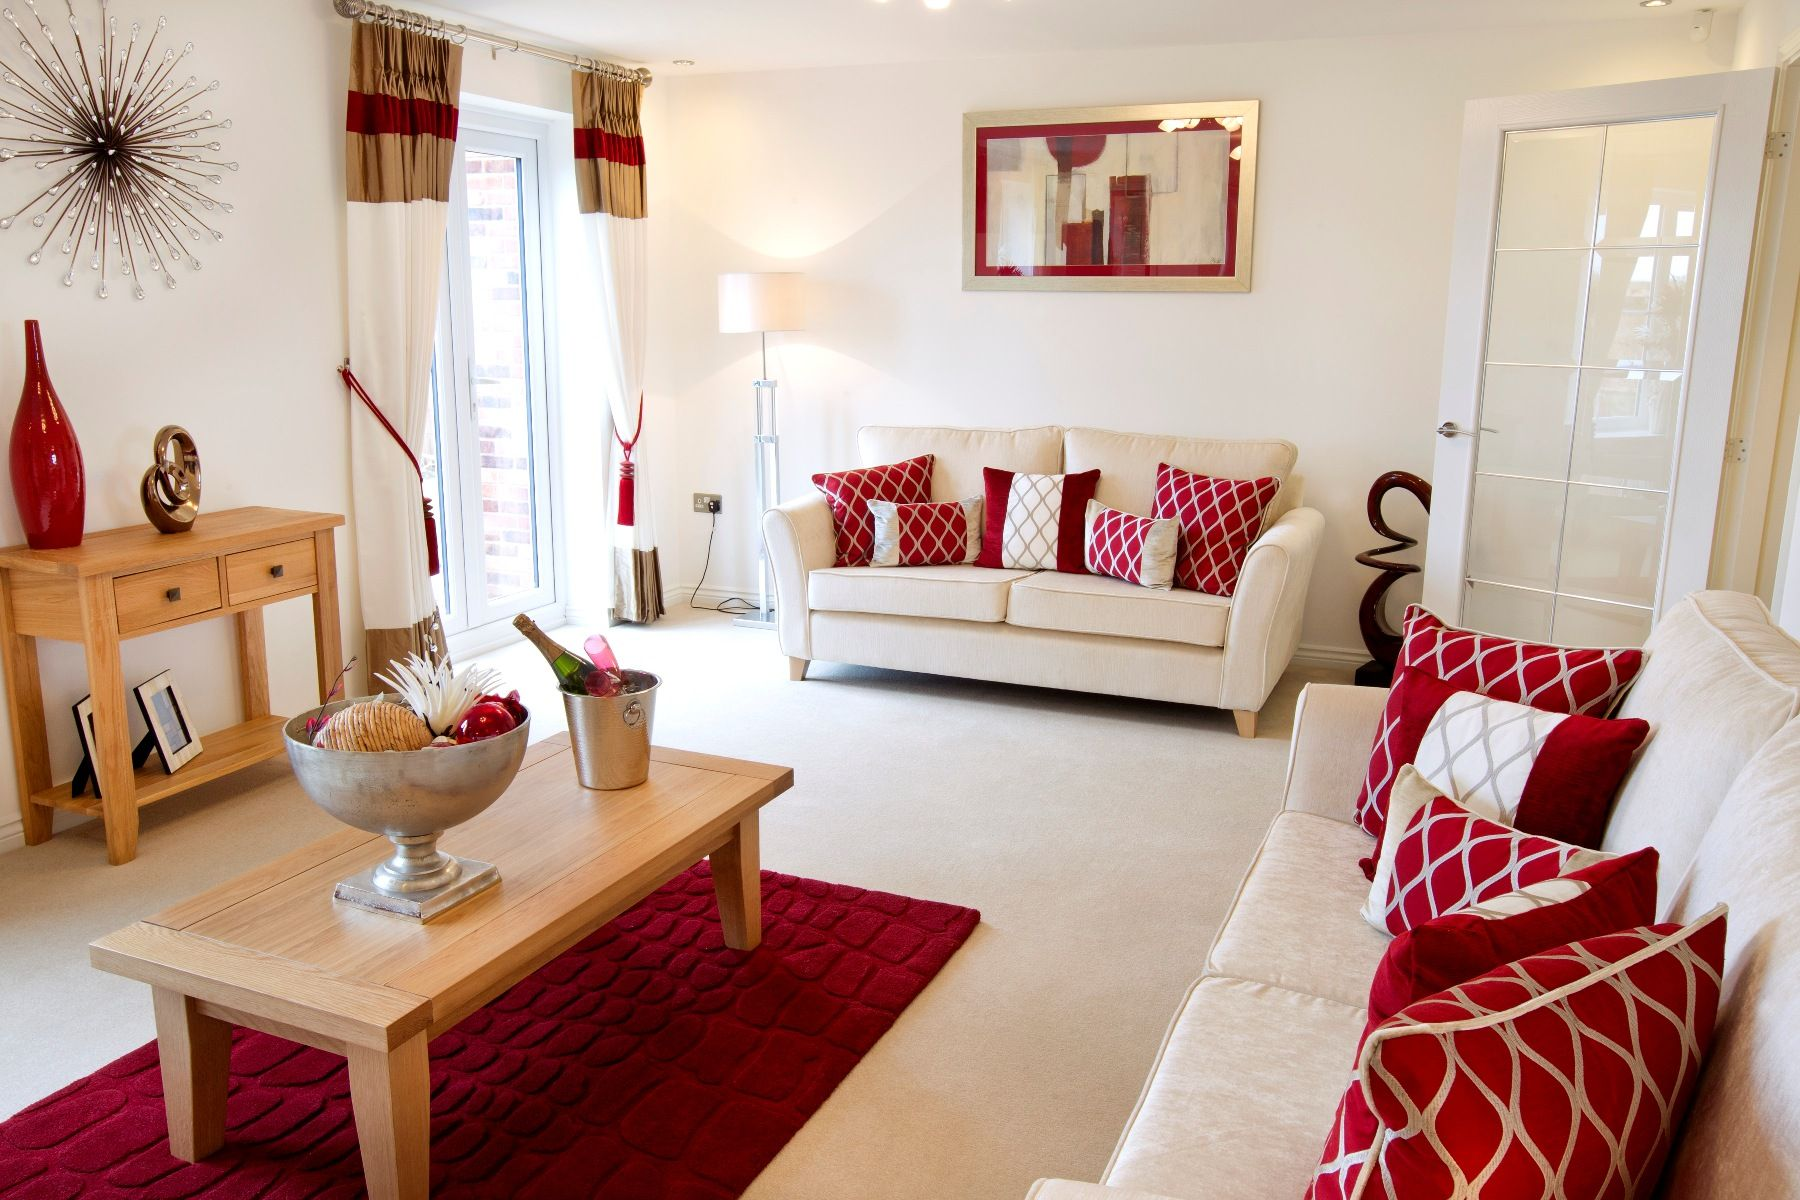 Red Hues Complement The Welcoming Cream Interior Of This Living Room